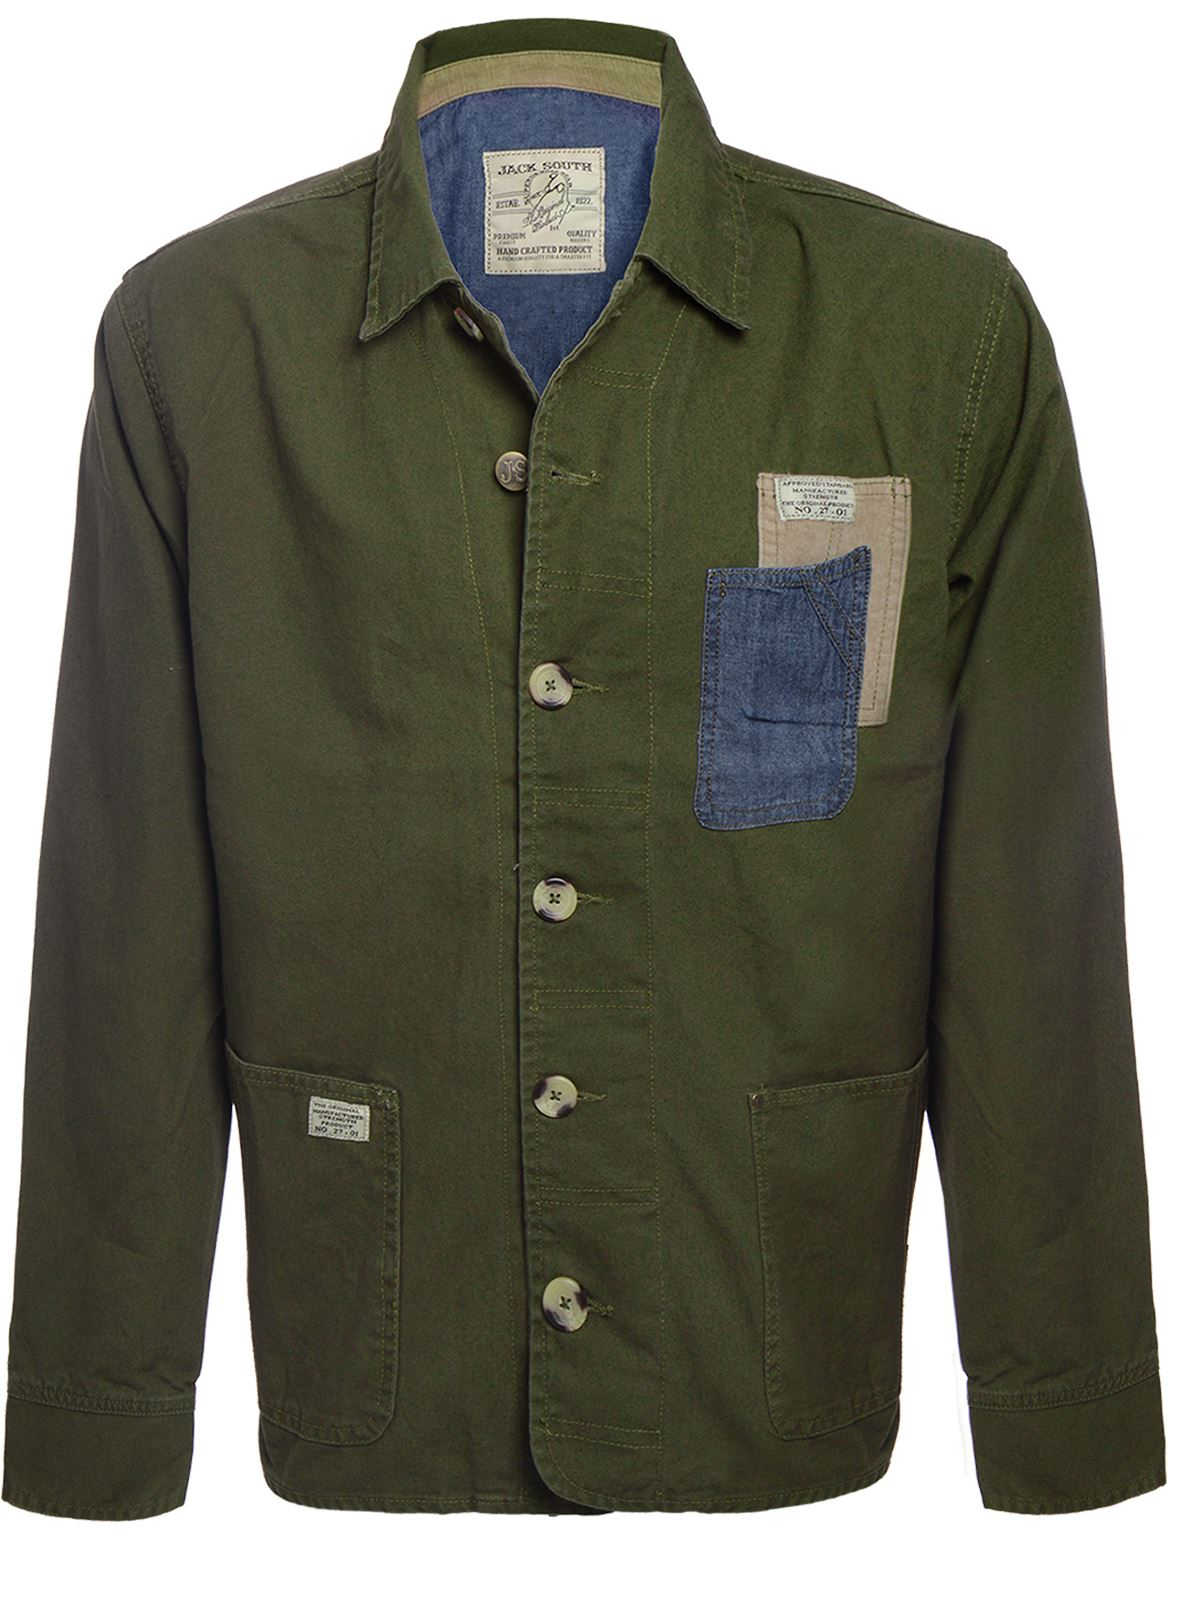 jack south mens military khaki utility jacket collared button up